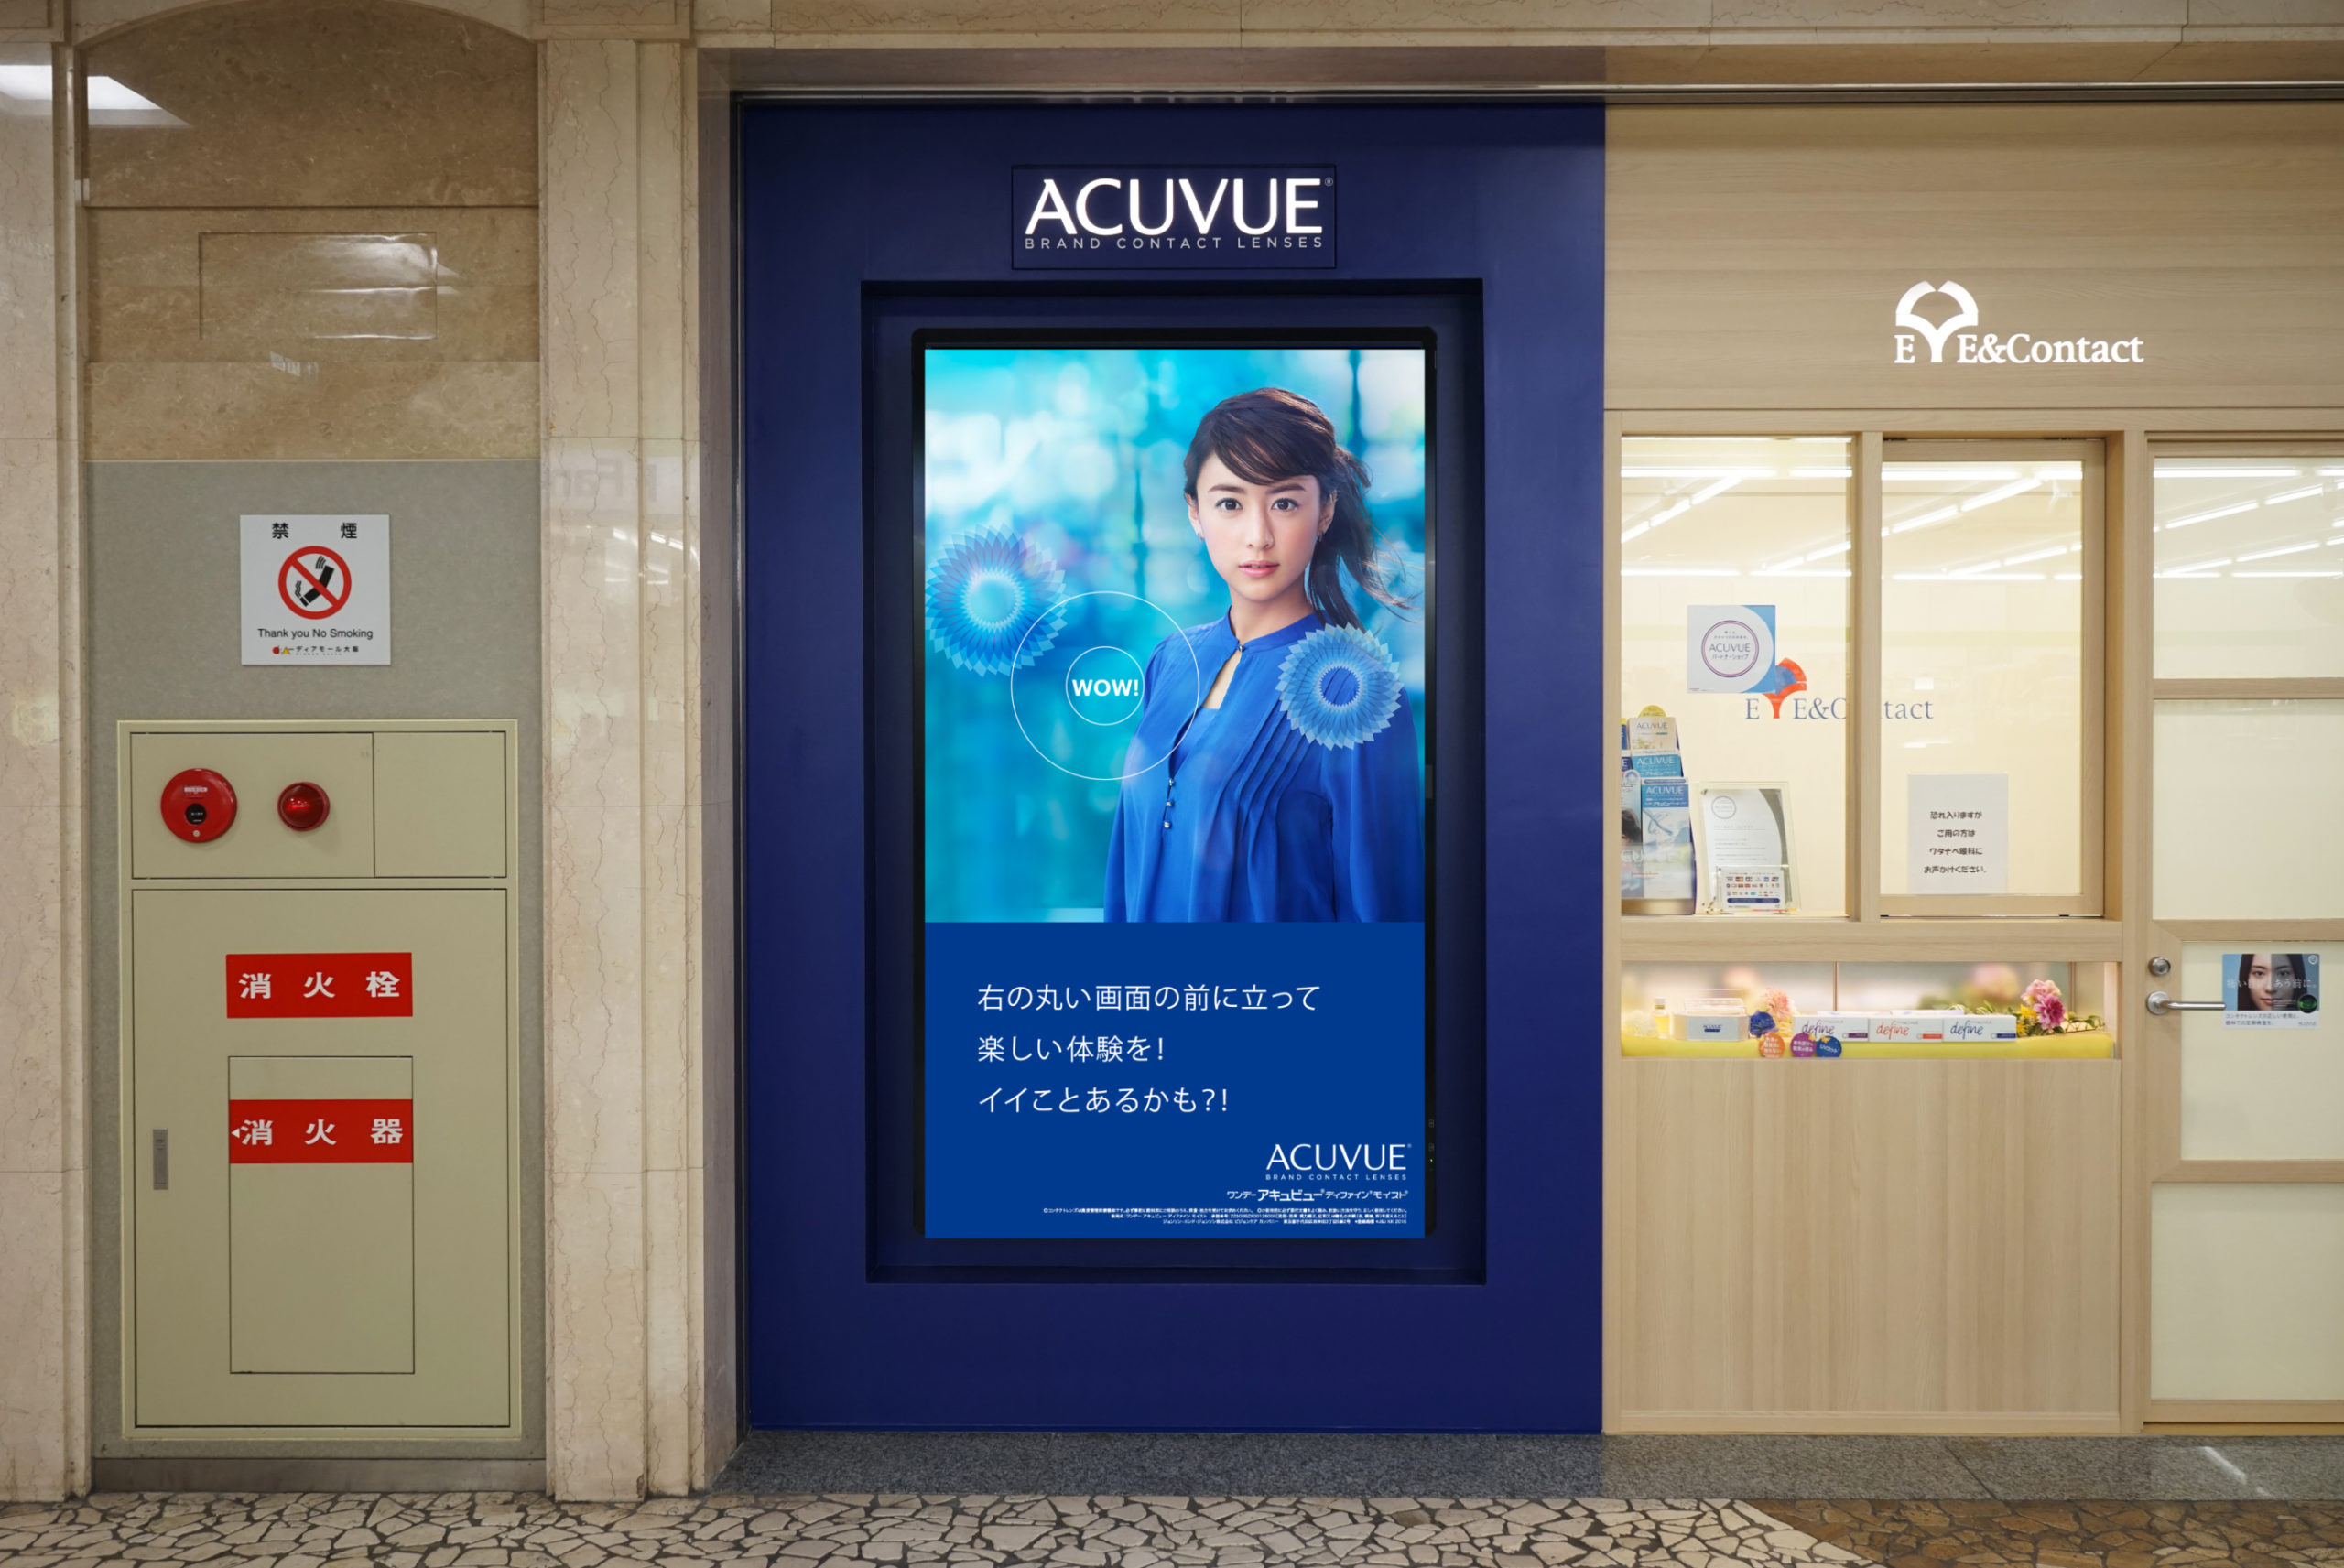 ACUVUE DISITAL SIGNAGE